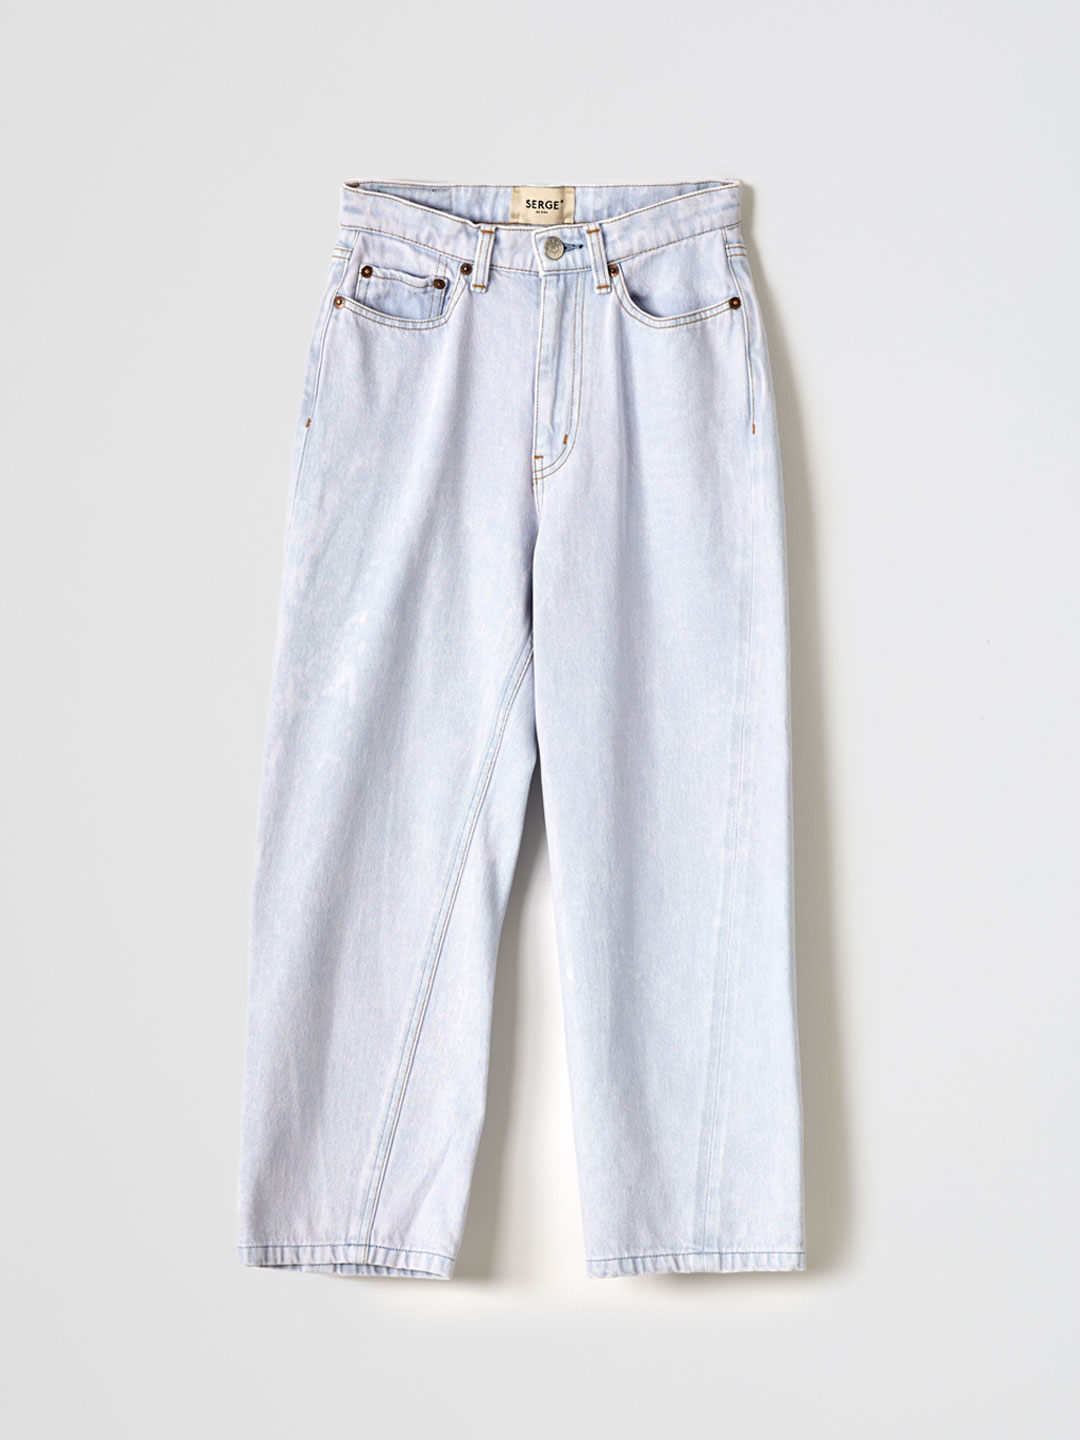 SERGE dodo bleu CROPPED PANTS - Light Blue